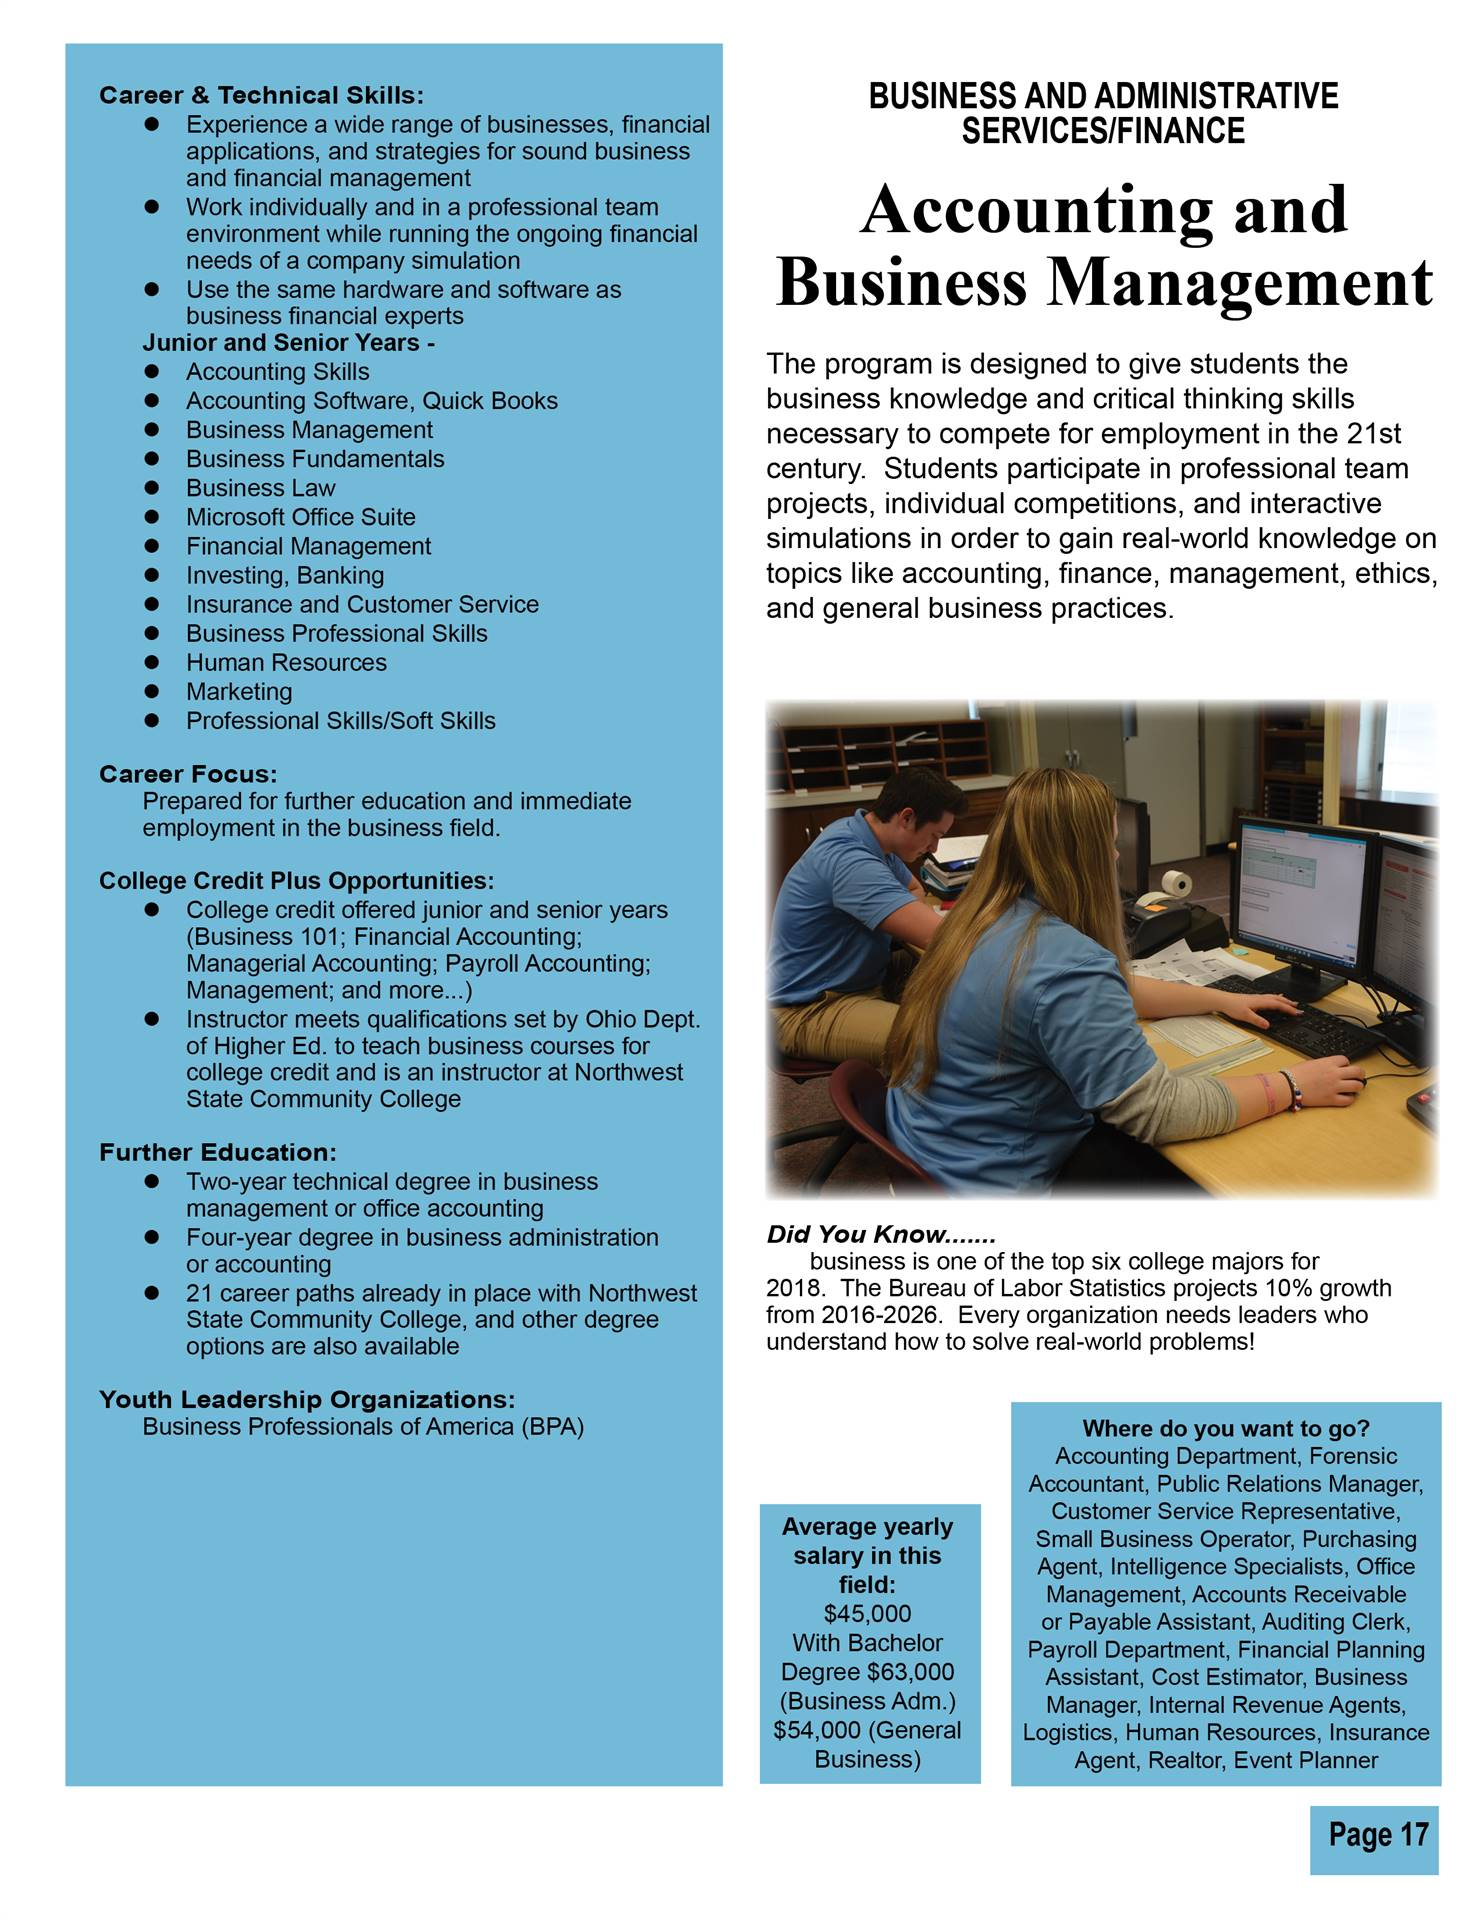 Accounting & Business Management